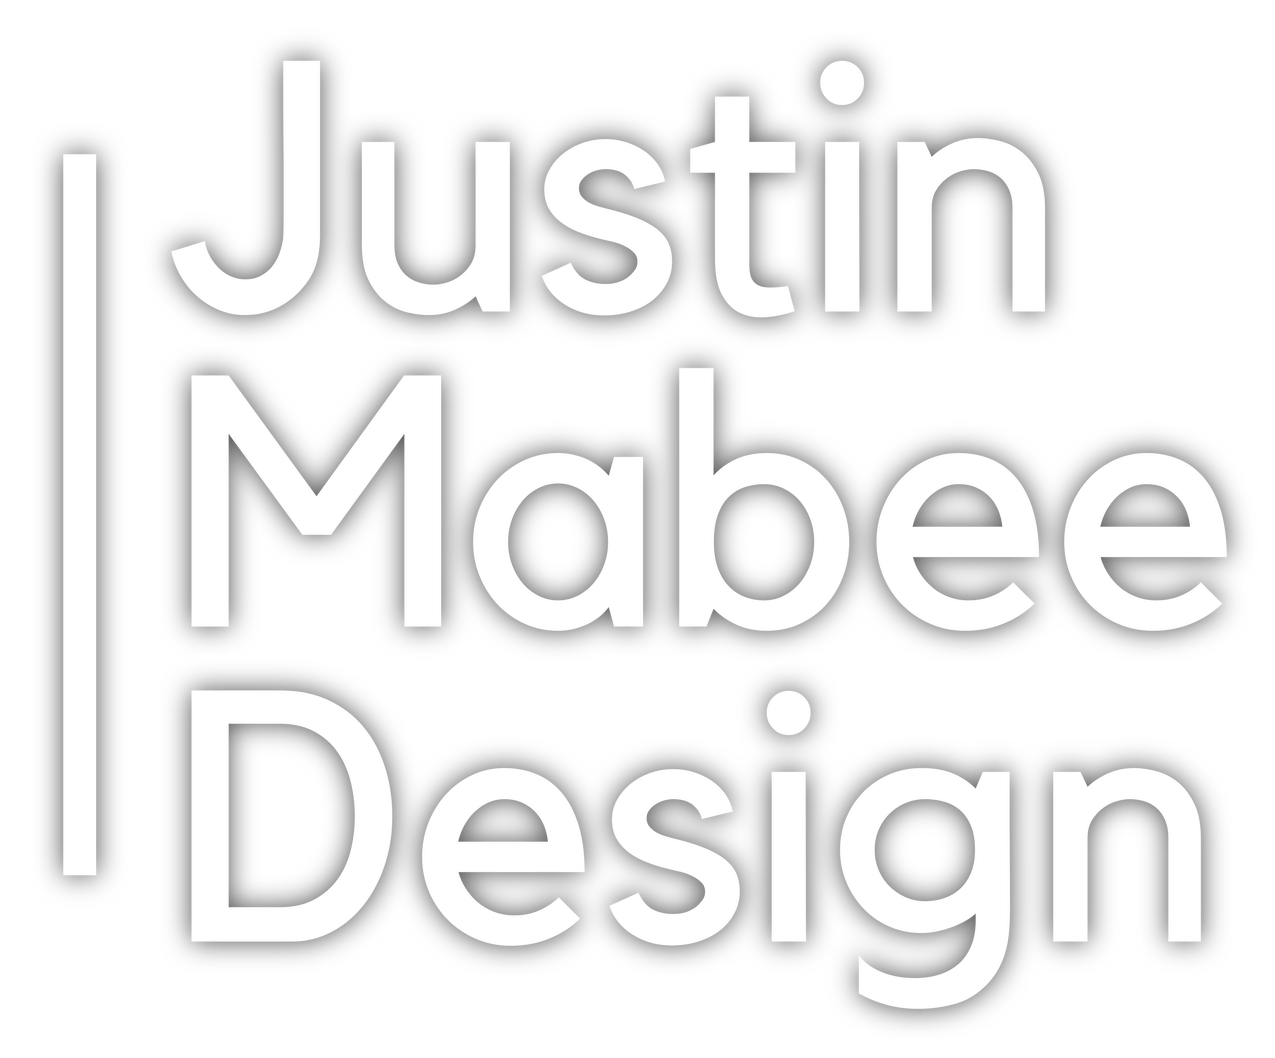 Justin Mabee Design - Squarespace Authorized Trainer and Design Services